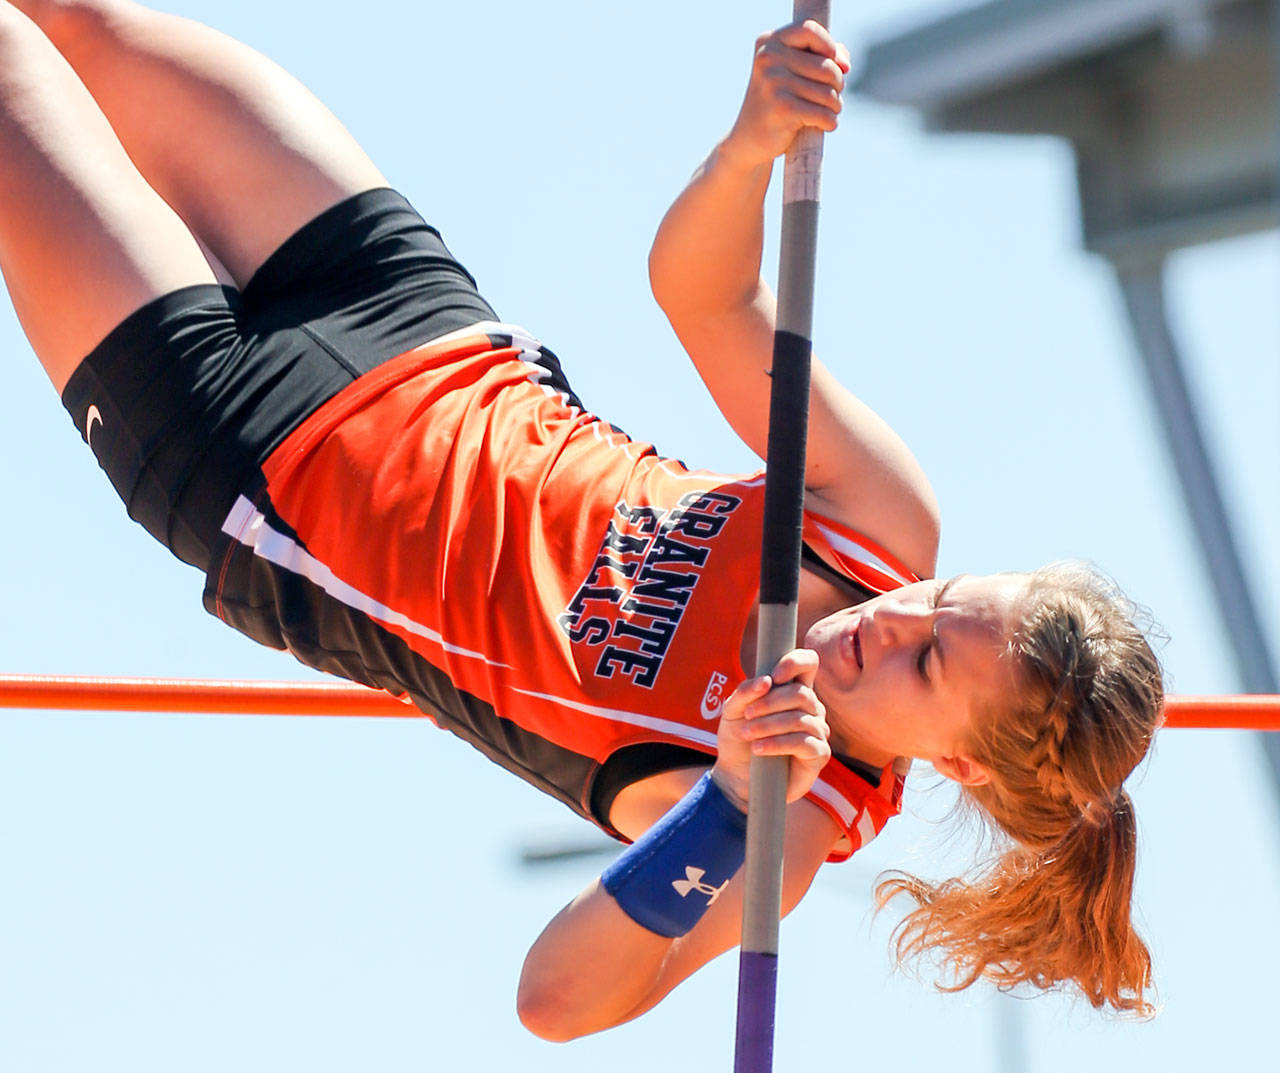 Kelsey Bassett of Granite Falls competes in the pole vault at the 2017 Class 2A state track and field championships in Tacoma last May. Bassett finished second in the event. (Kevin Clark / The Herald)                                Kelsey Bassett of Granite Falls competes in the pole vault at the 2017 Class 2A state track and field championships last May in Tacoma. Bassett finished second in the event. (Kevin Clark / The Herald)